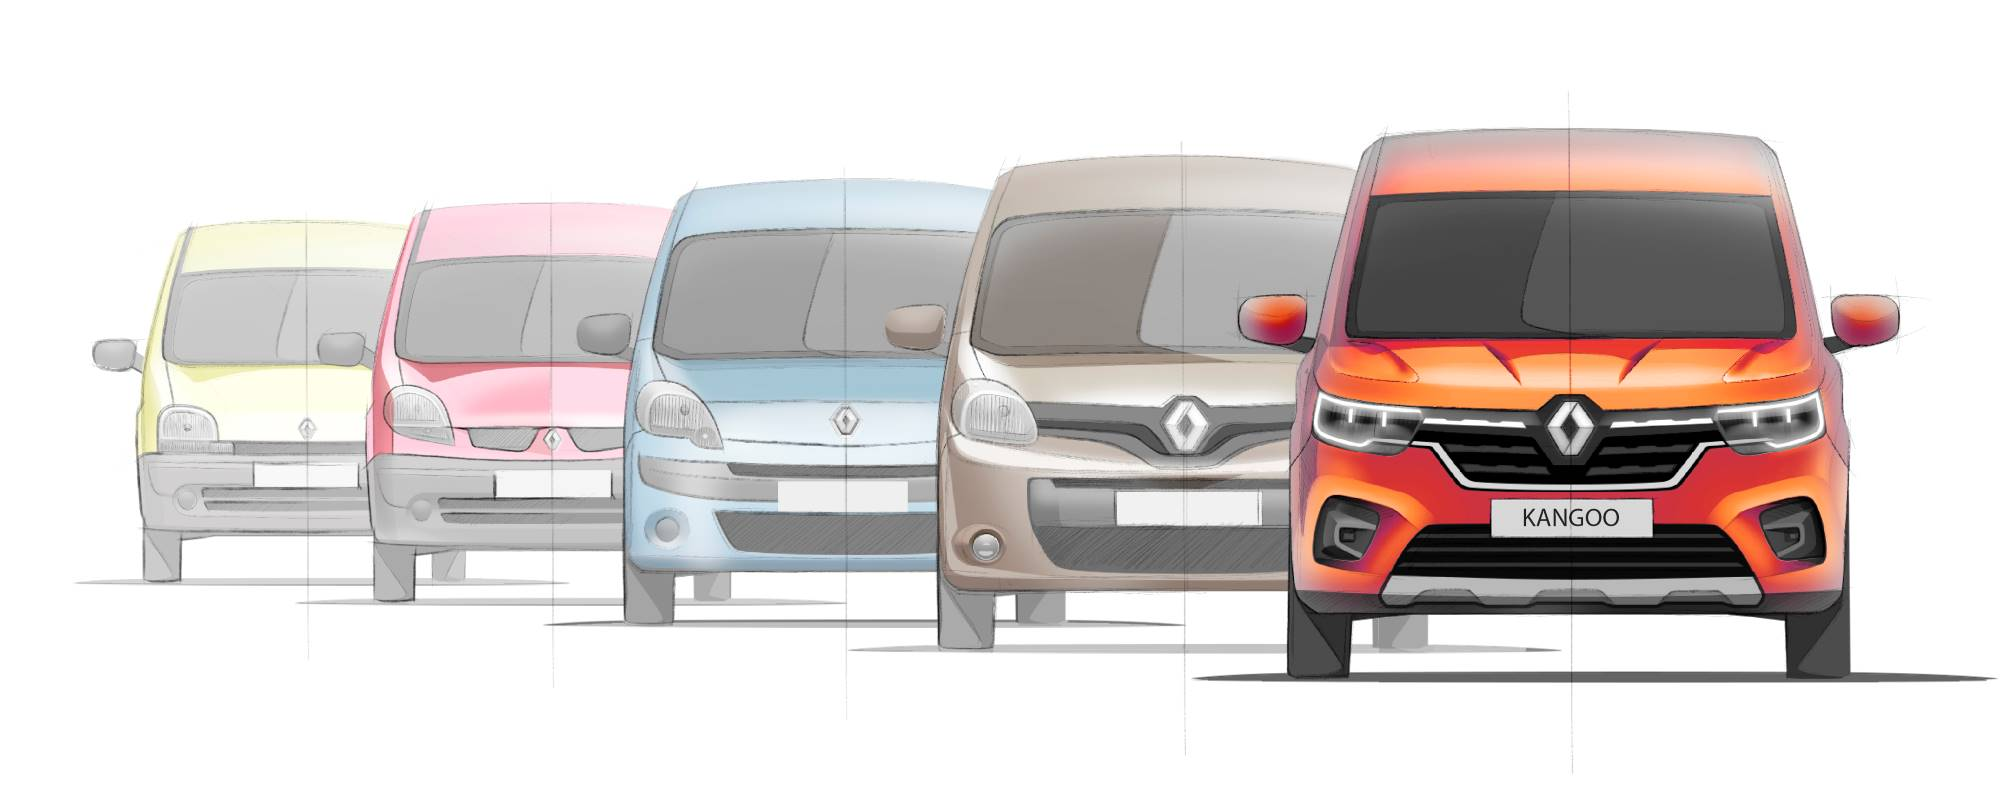 Saga Renault Kangoo: LCV and ludospace, the best of both worlds